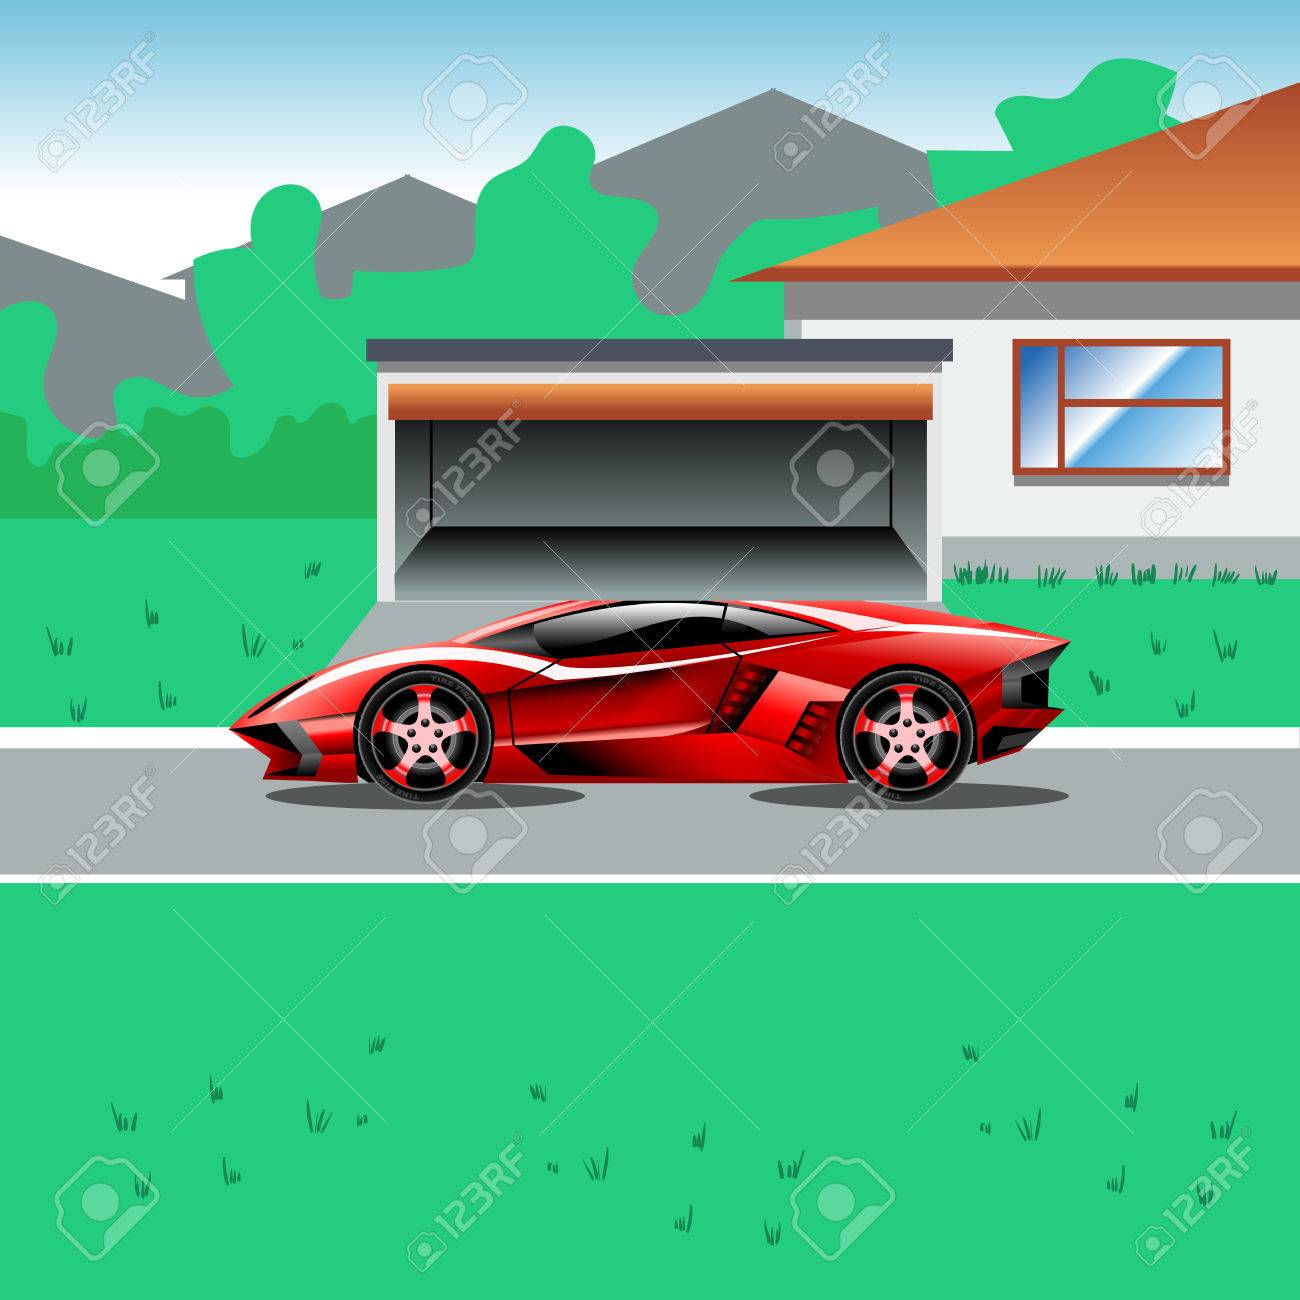 Red Luxury Sport Car Parked Beside A House With A Garage. Suburban on